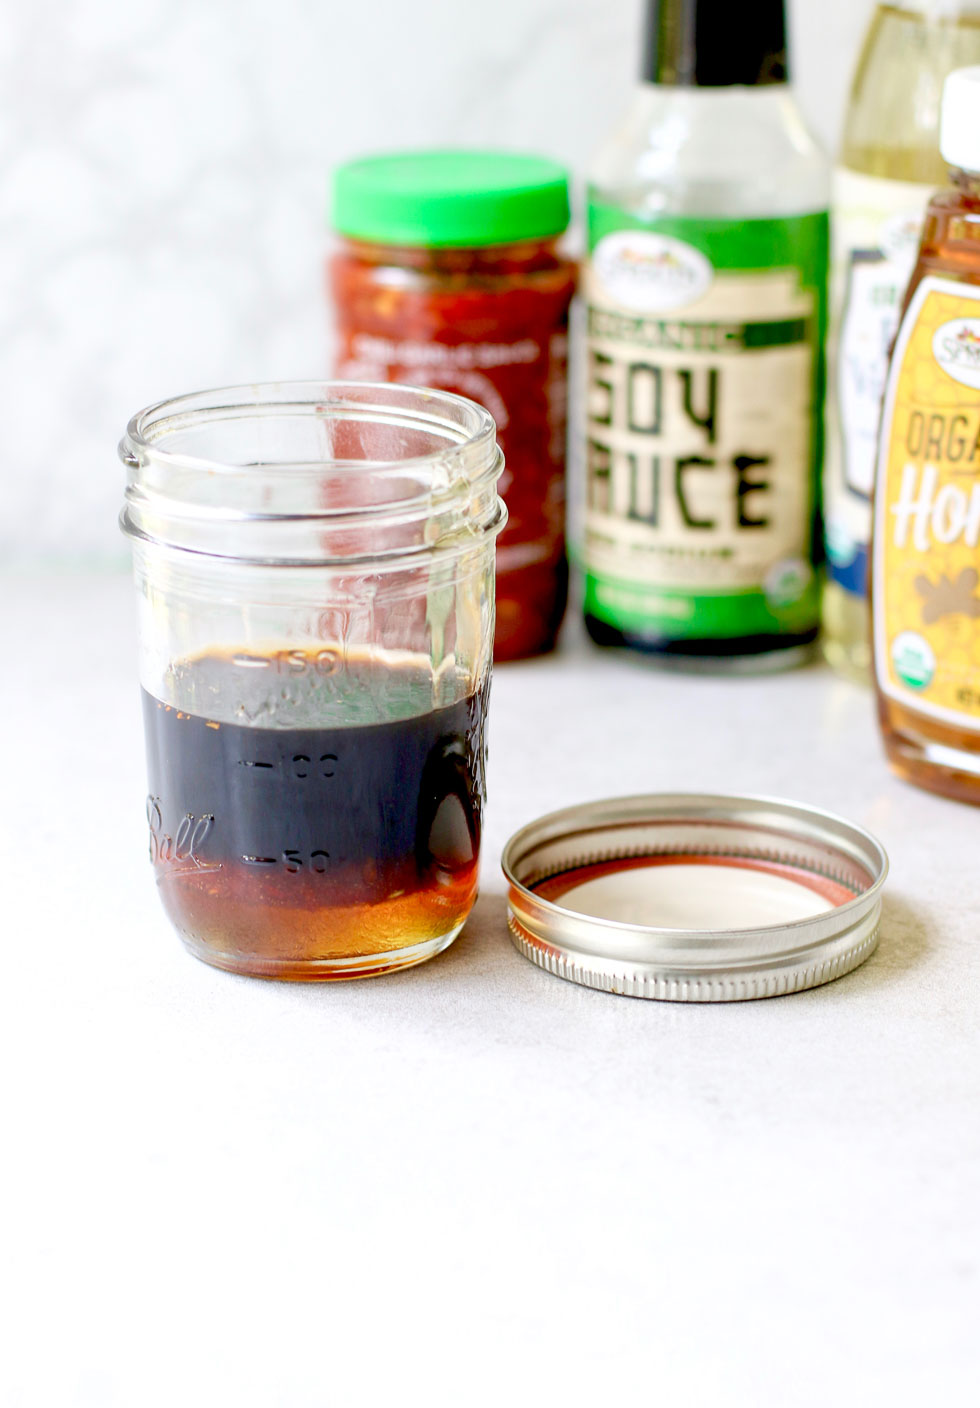 Homemade Stir-Fry Sauce